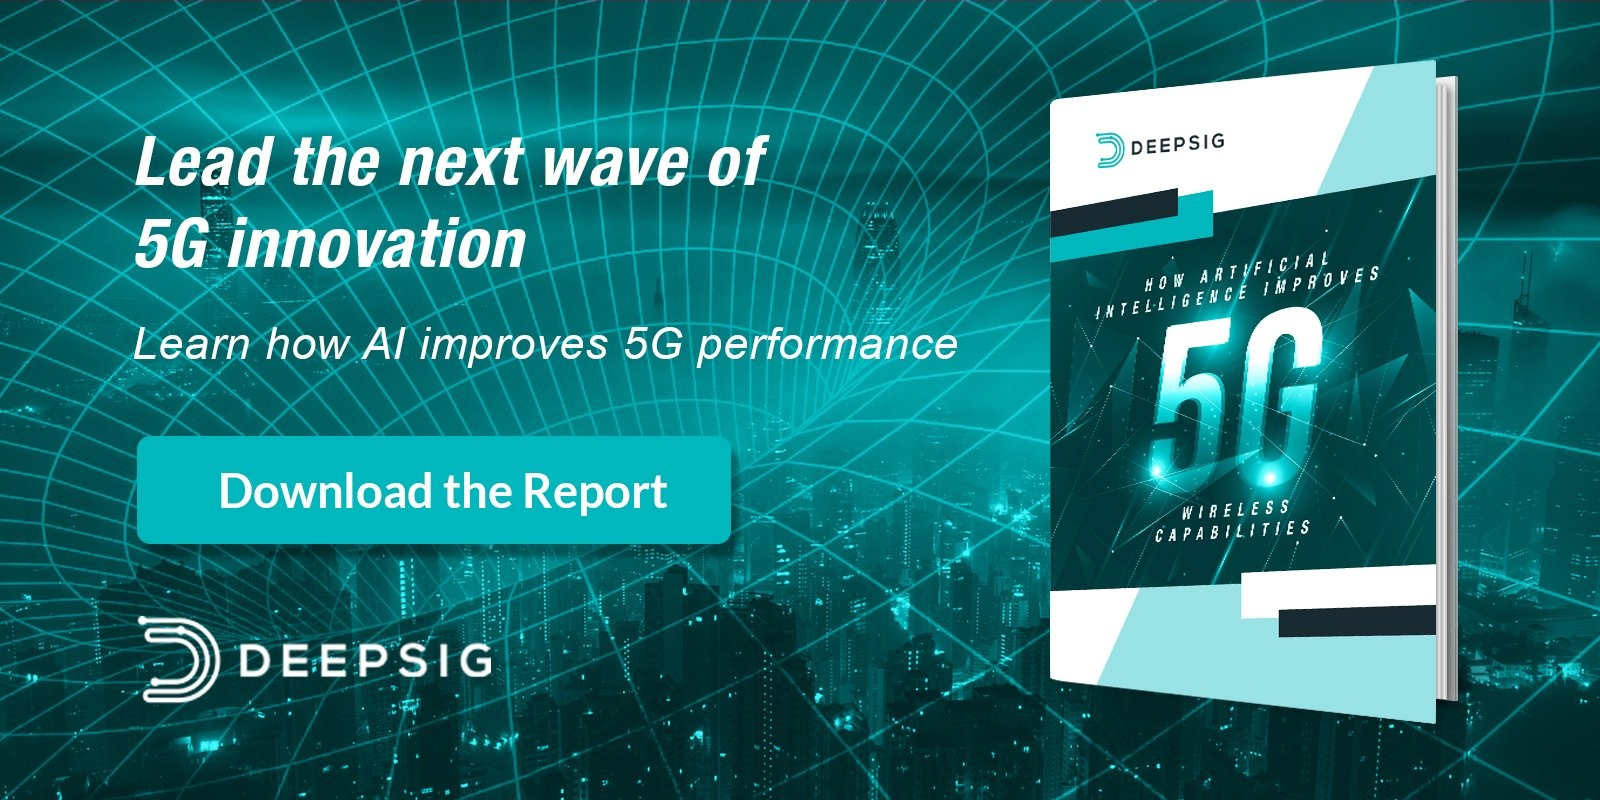 learn how AI improves 5G performance - artificial intelligence impacts 5G wireless capabilities